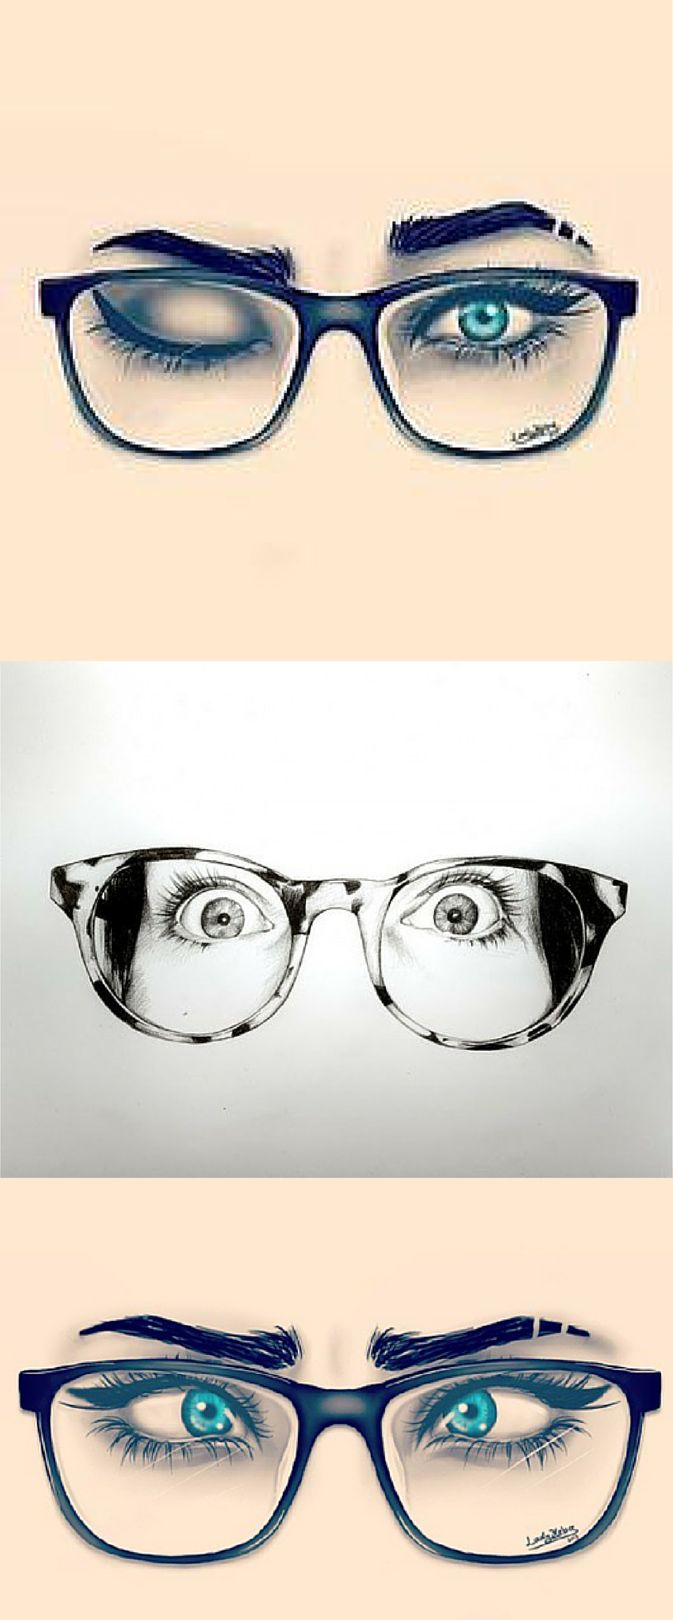 Drawn goggles water art Best Find Pinterest eye images